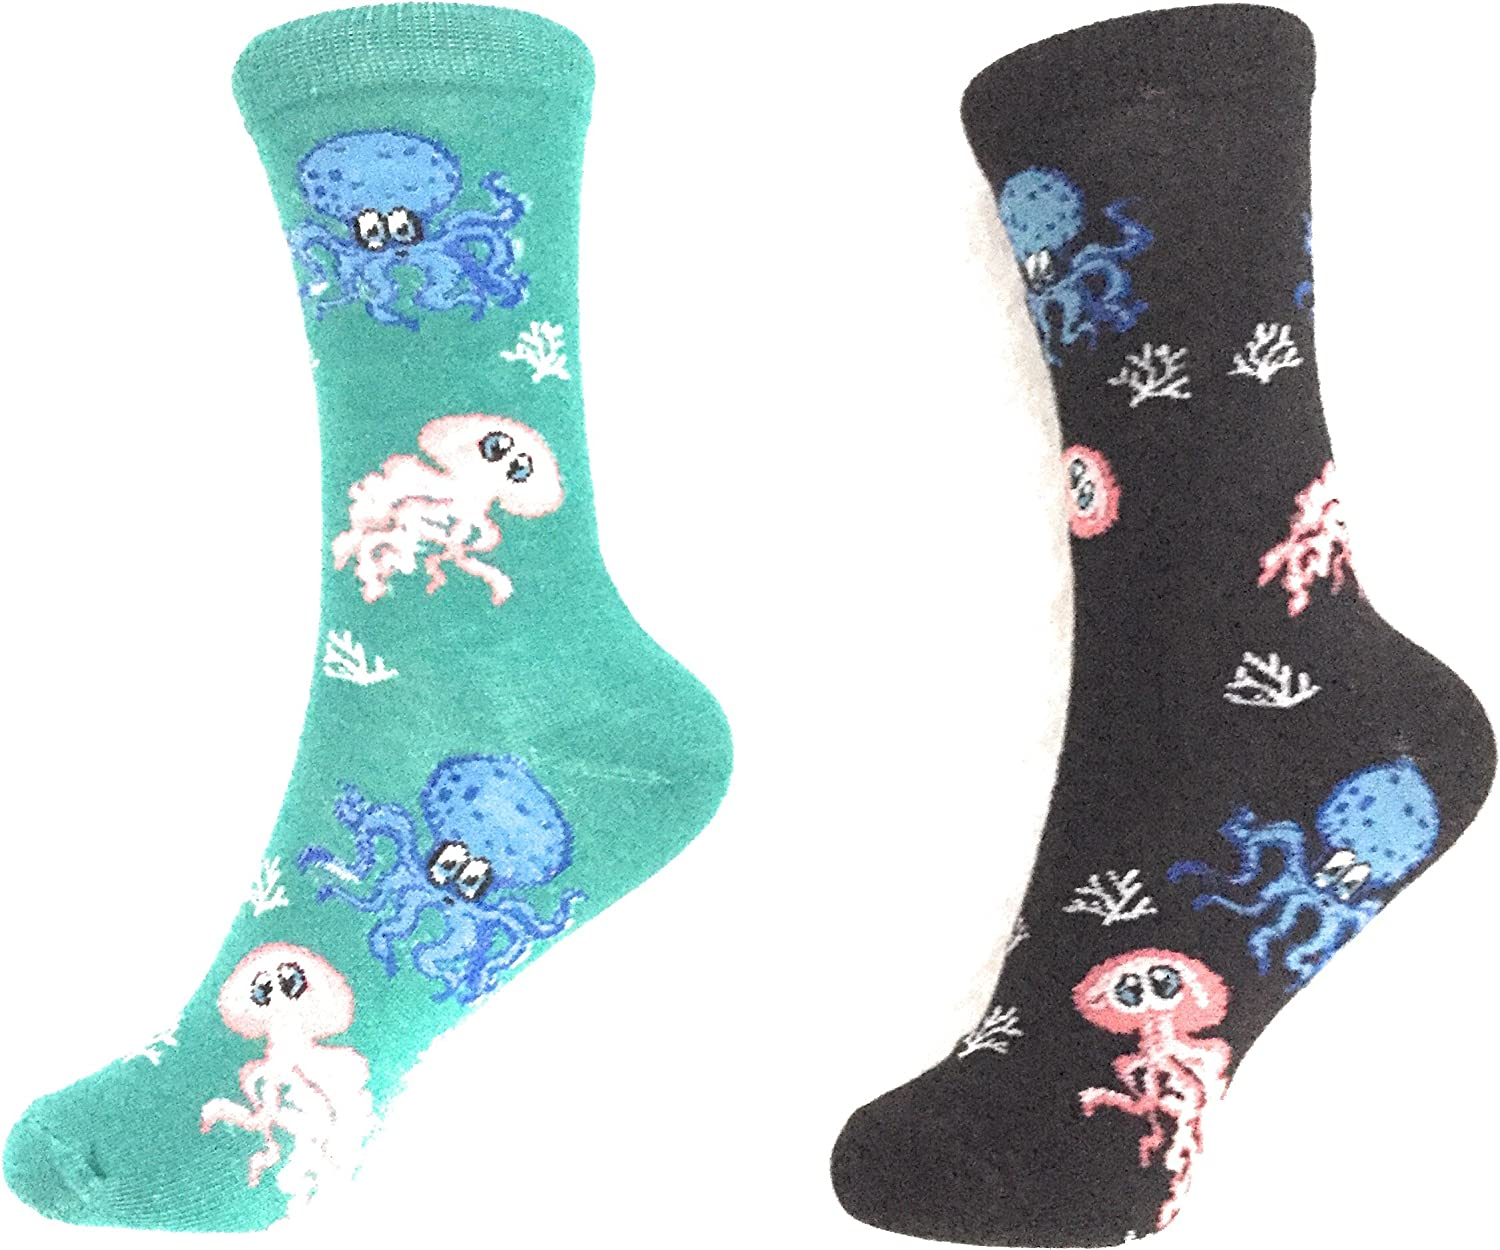 2 Pack Socks Octopus Pattern Novelty Crew Socks Fun Fashion Casual Comfy Cozy (2 Pack)